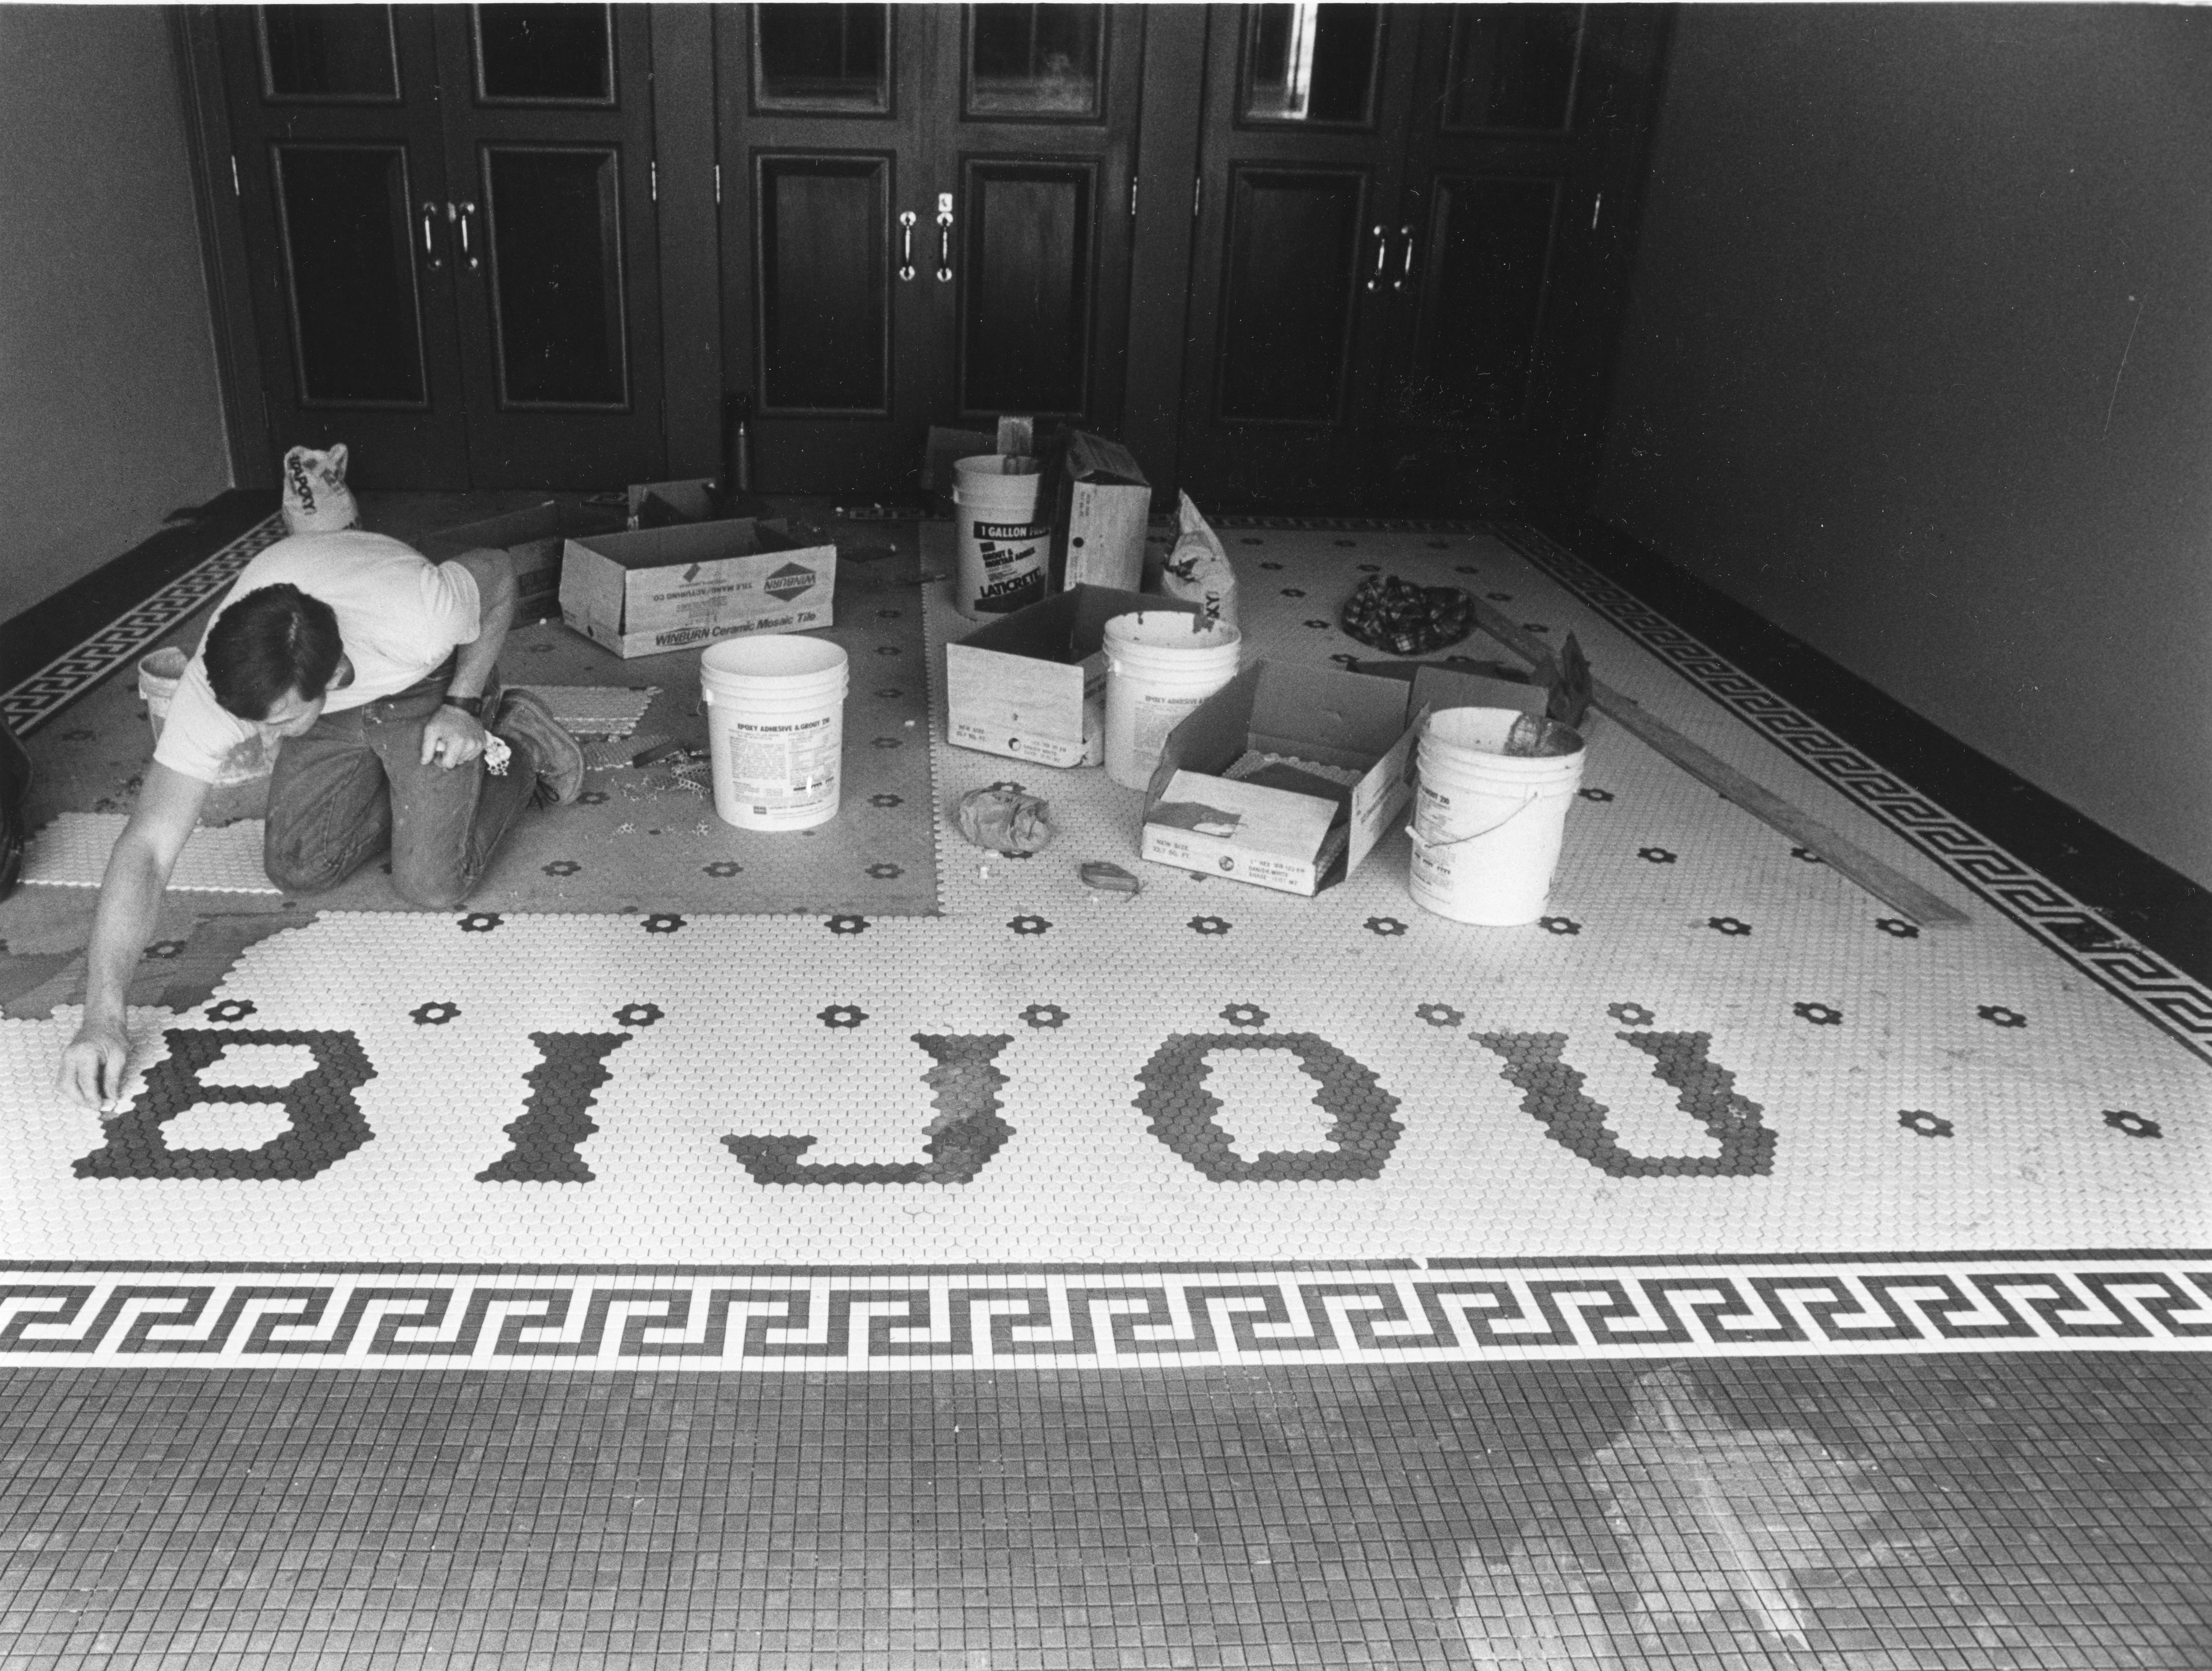 Ronnie Jenkins finds the hardest part of his job is being on your knees for so long. Jenkins, with John Beretta Tile Co., and another employee have been working on the foyer of the Bijou Theatre on October 25, 1985.